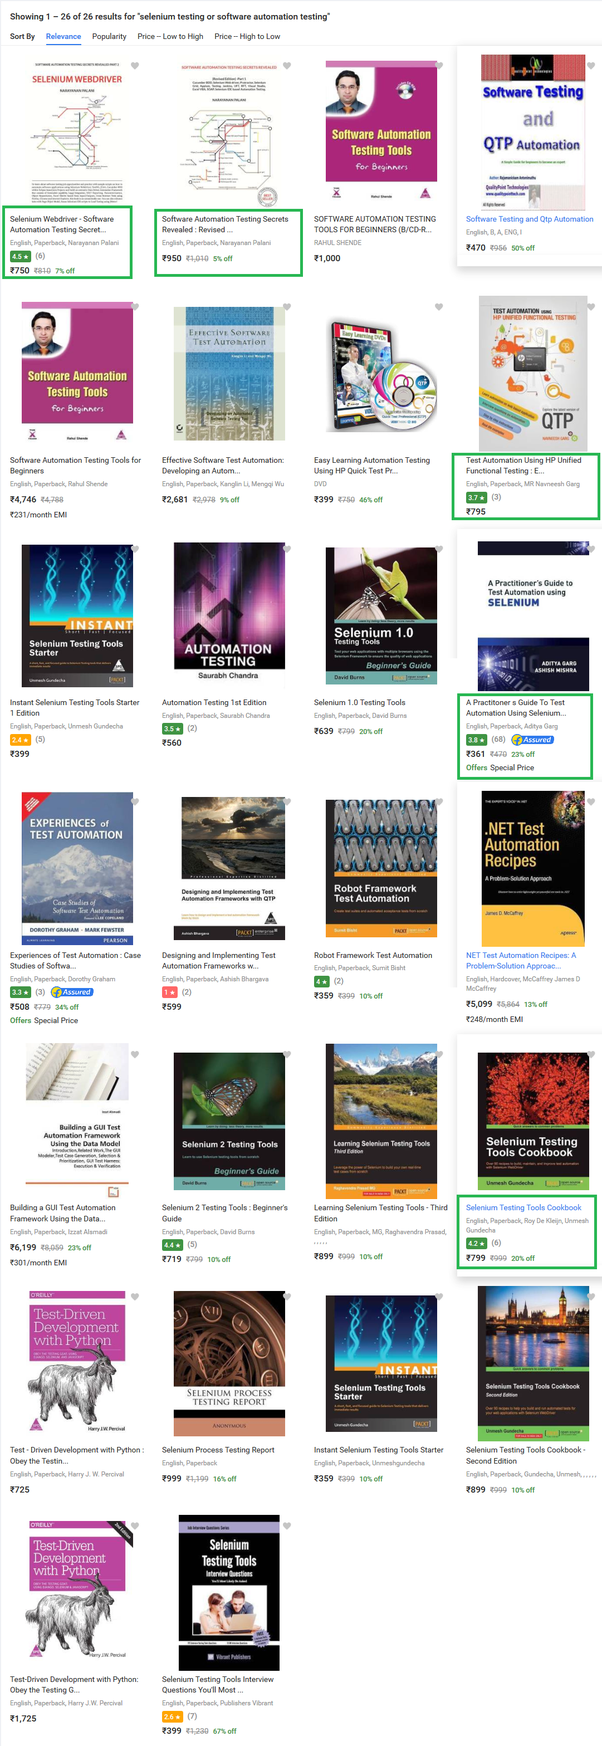 What Is The Best Book To Learn Selenium Quora